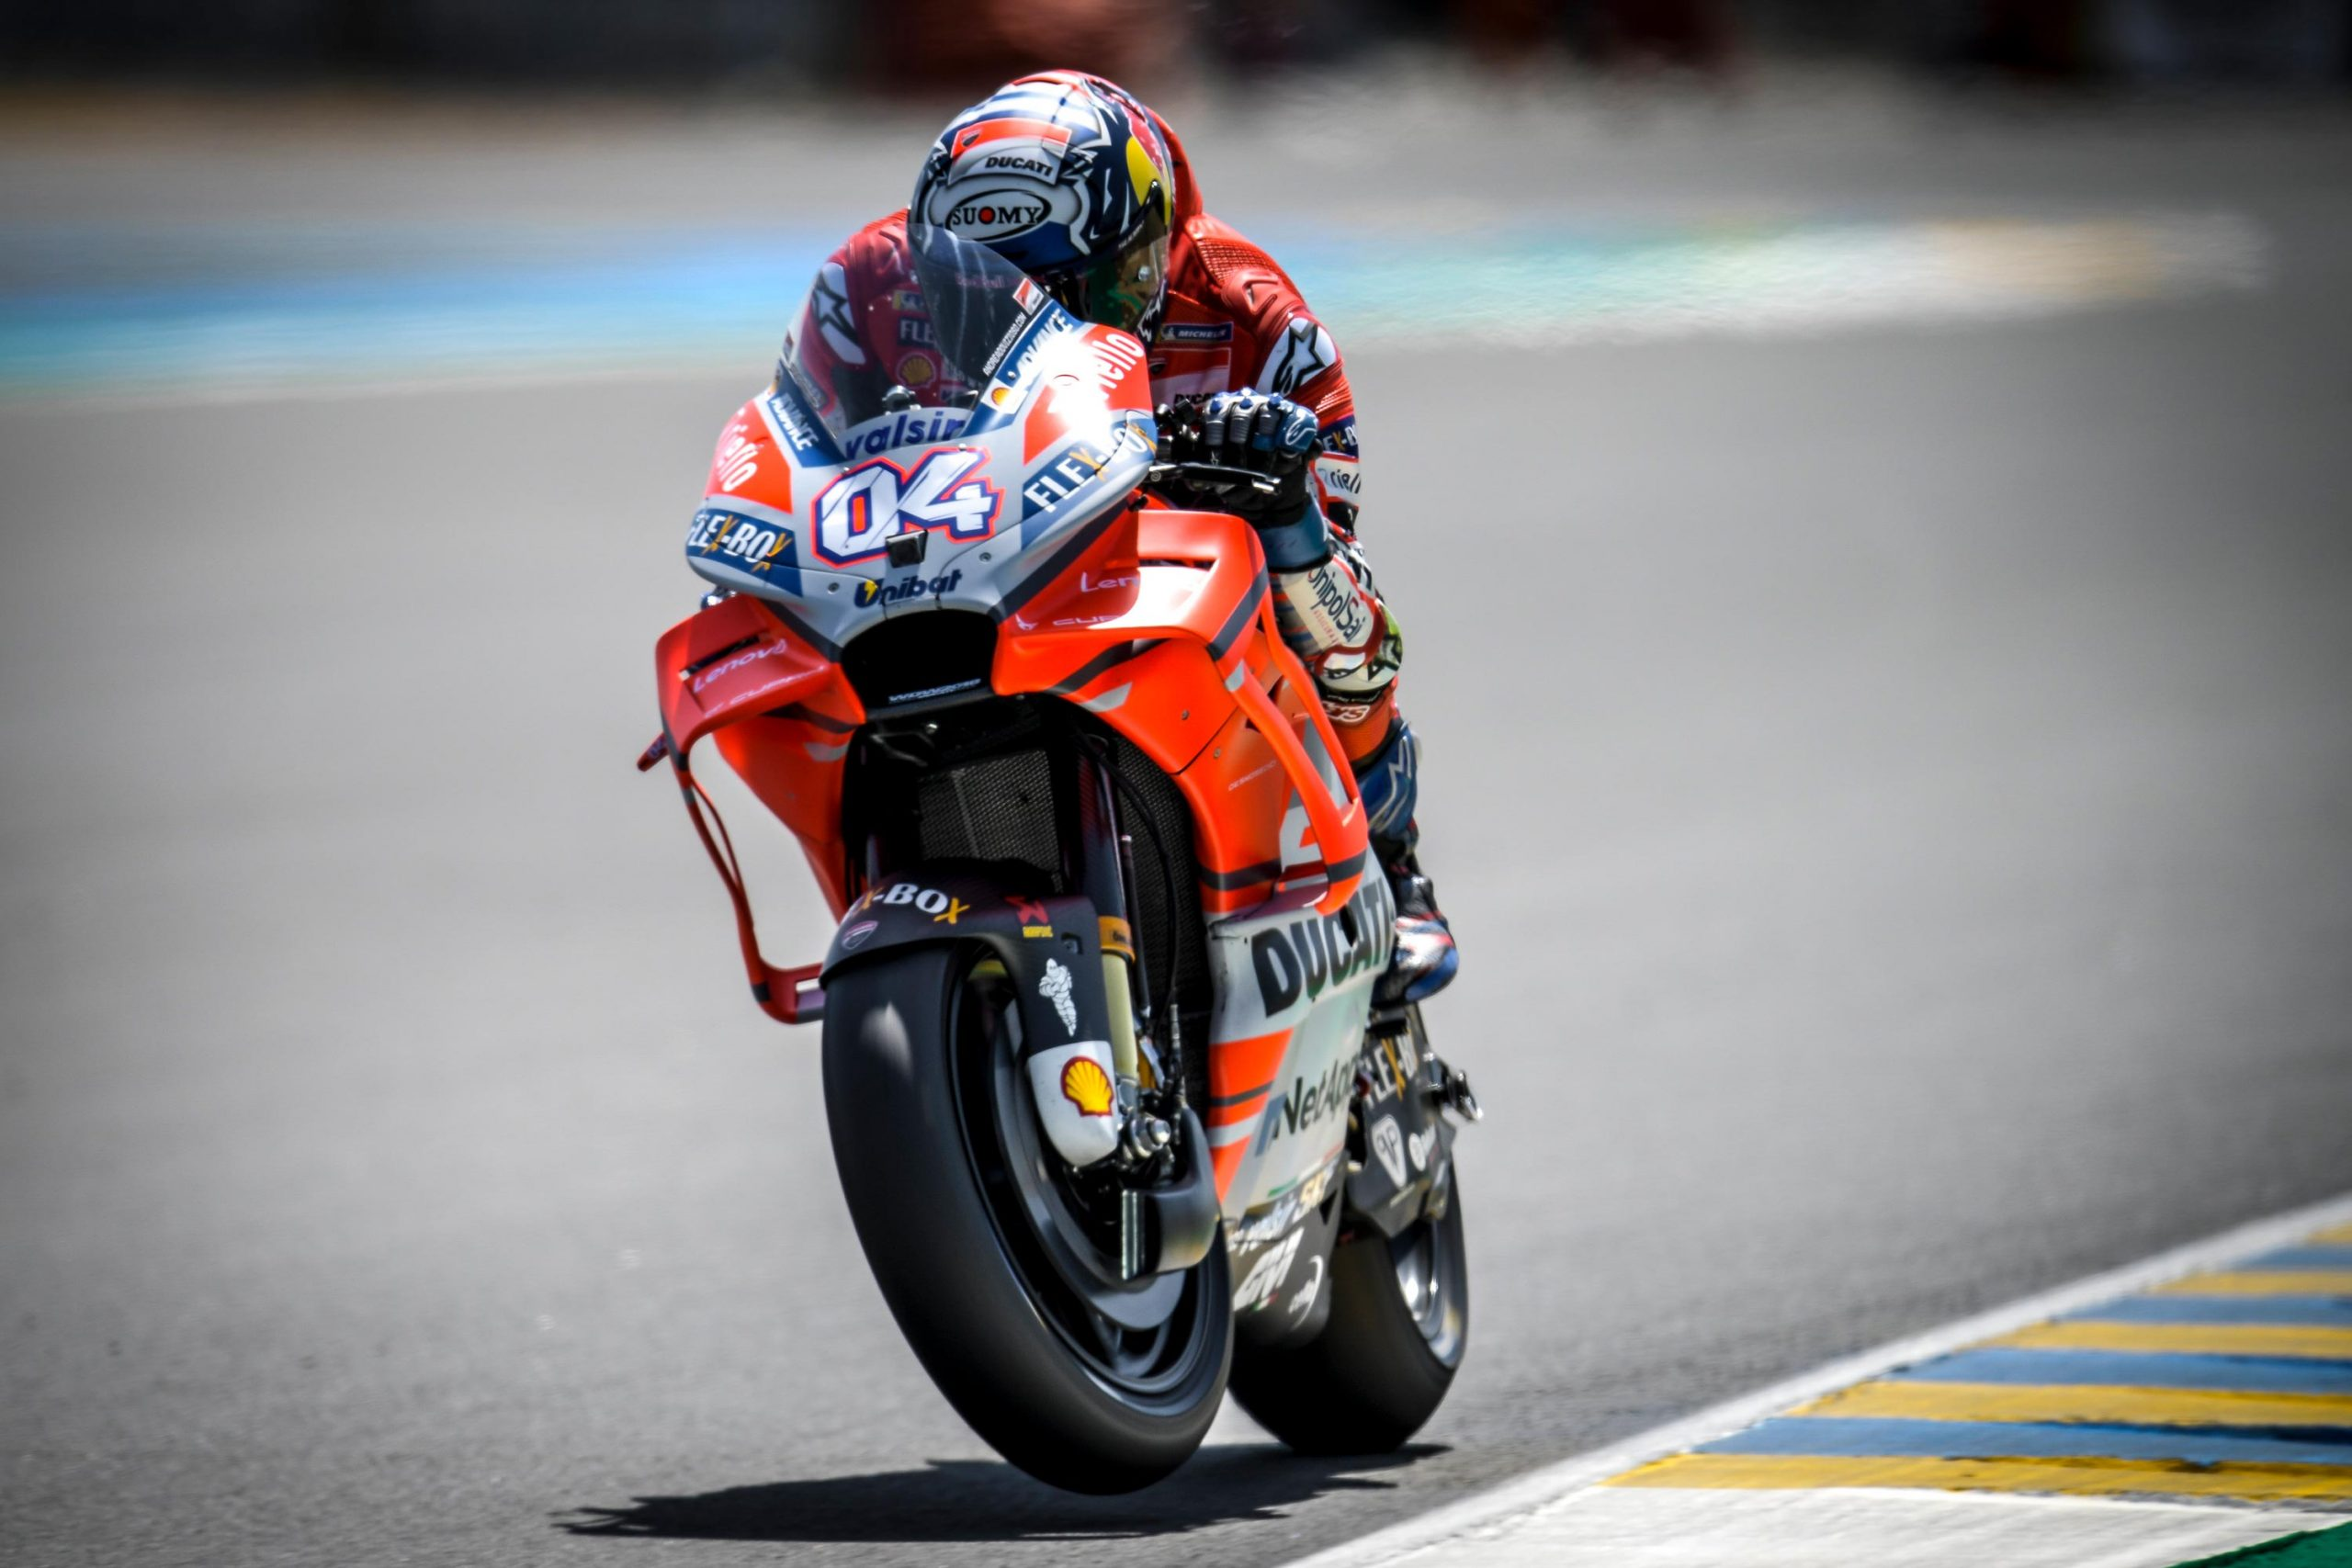 Friday Motogp Summary At Le Mans Old Hards Vs New Softs Avoiding Electronics Dovi S New Deal Asphalt Rubber